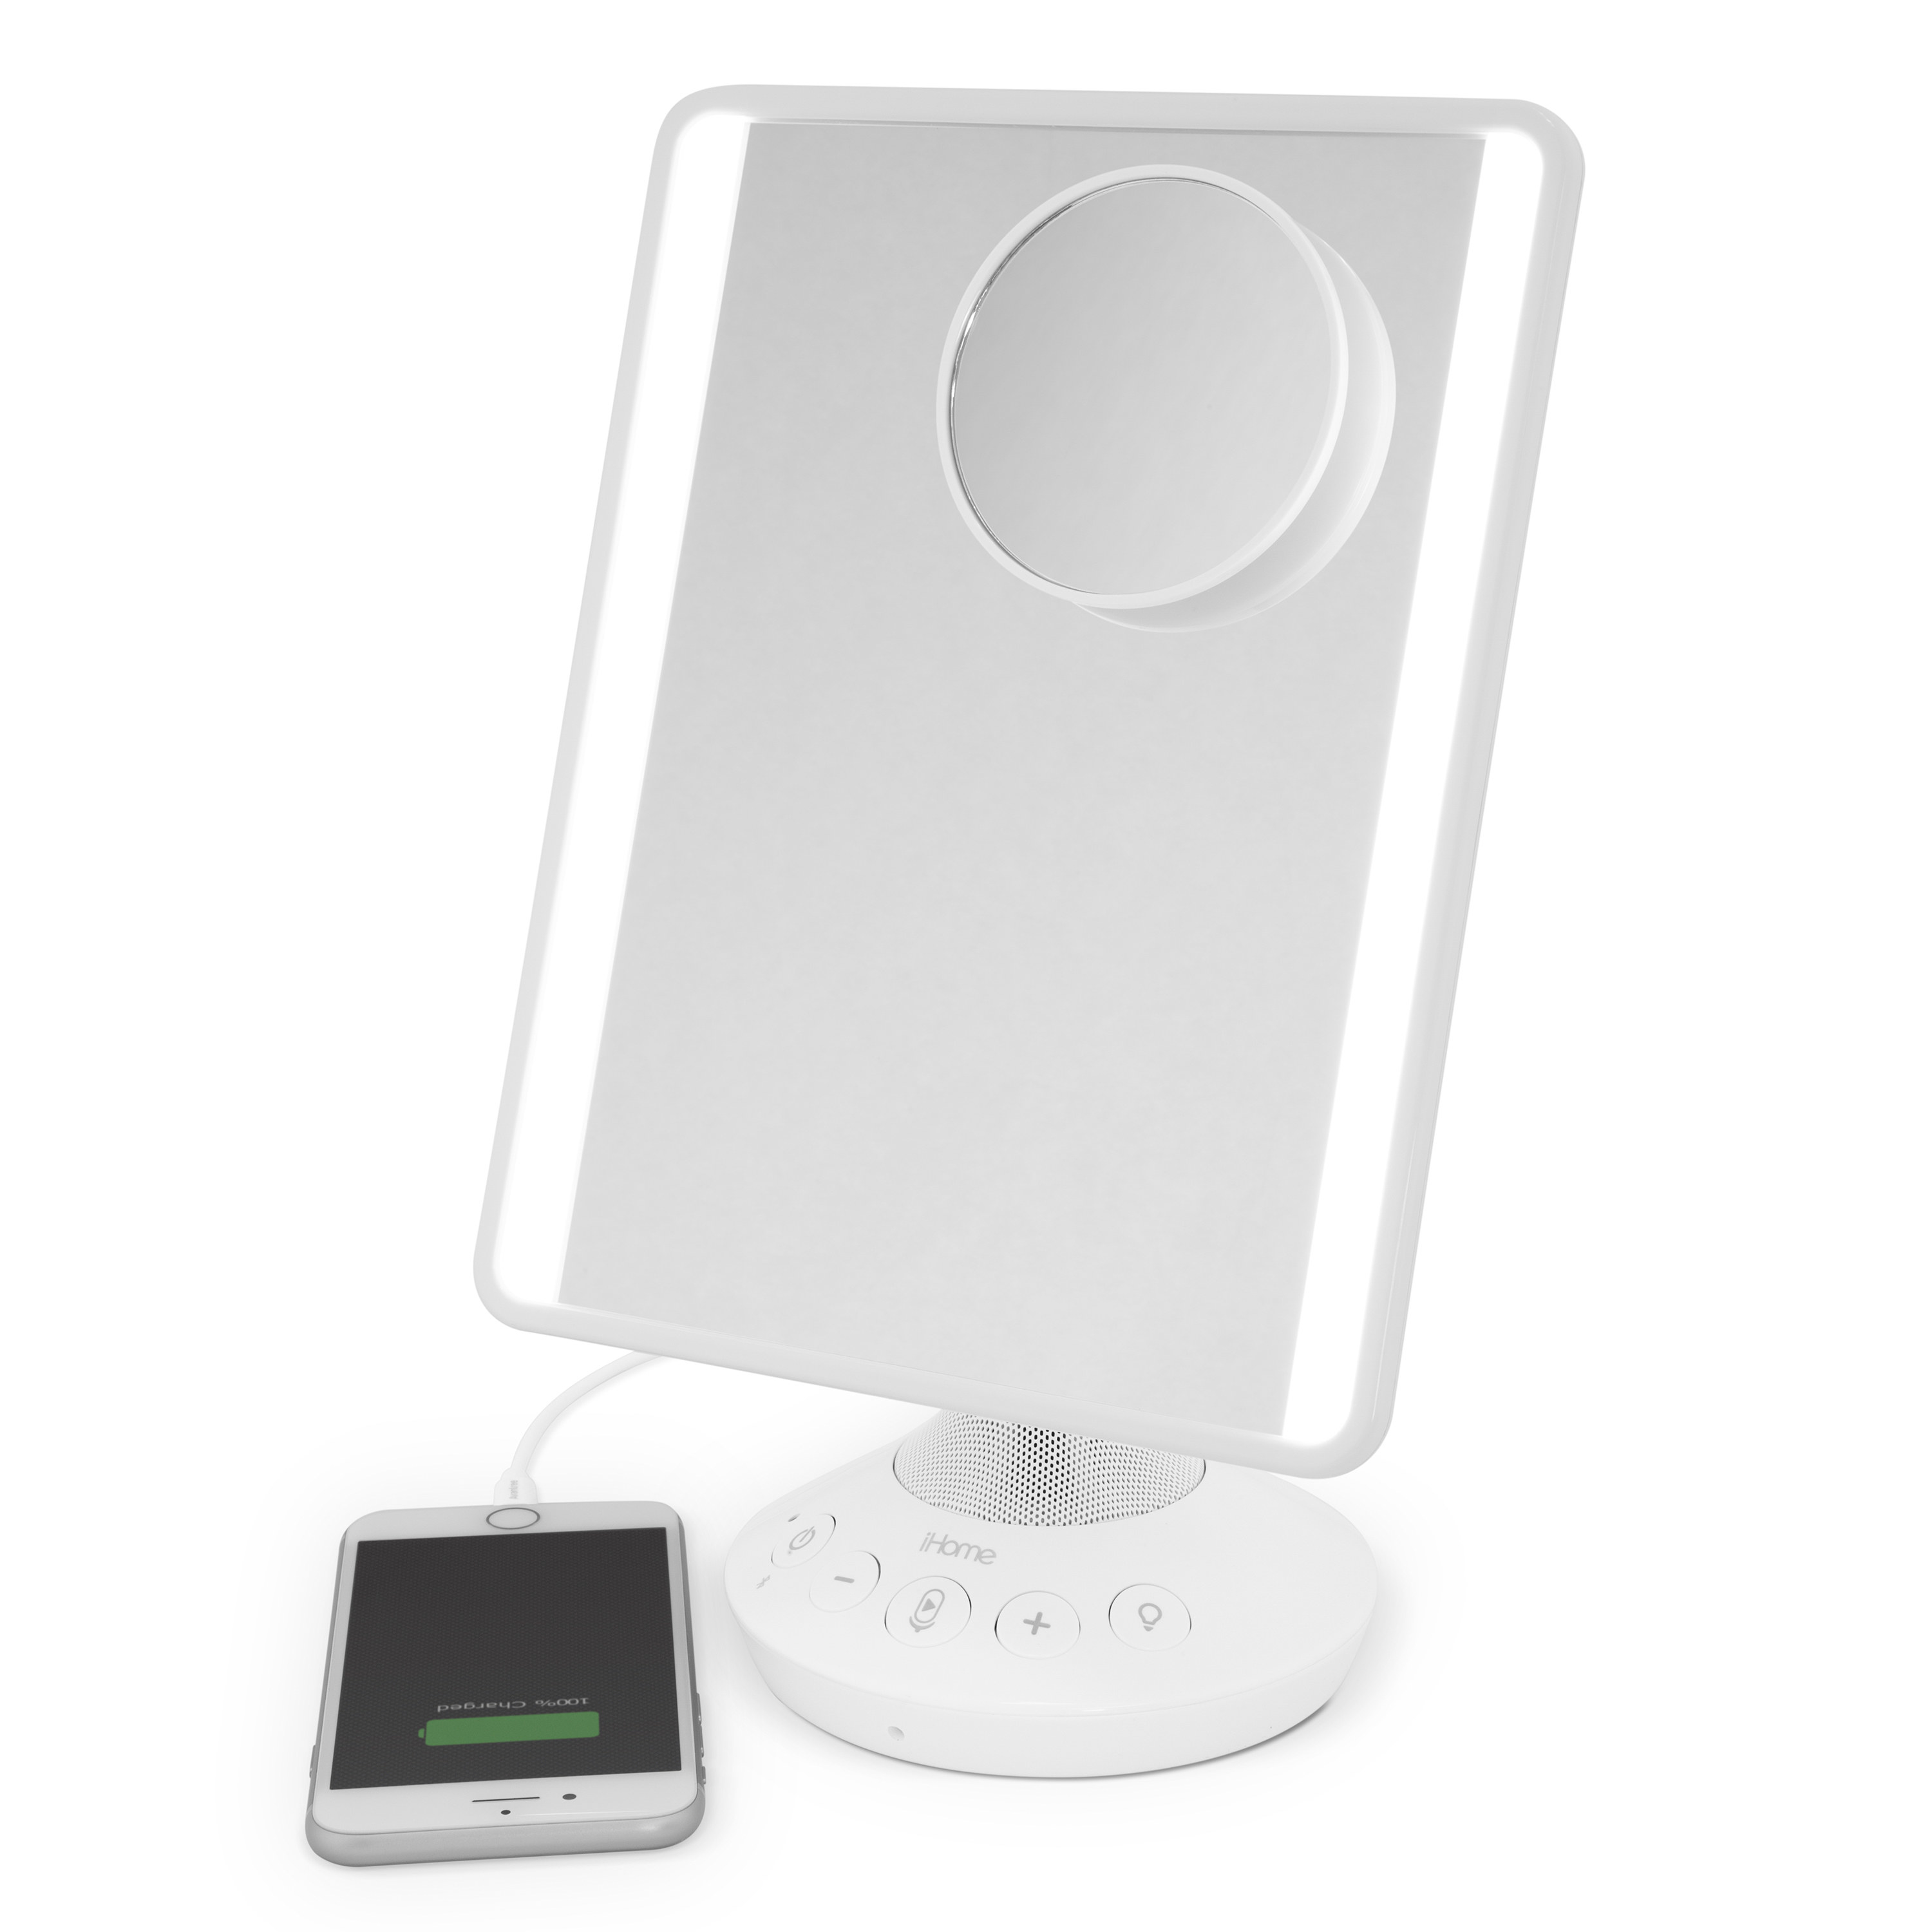 The iHome mirror